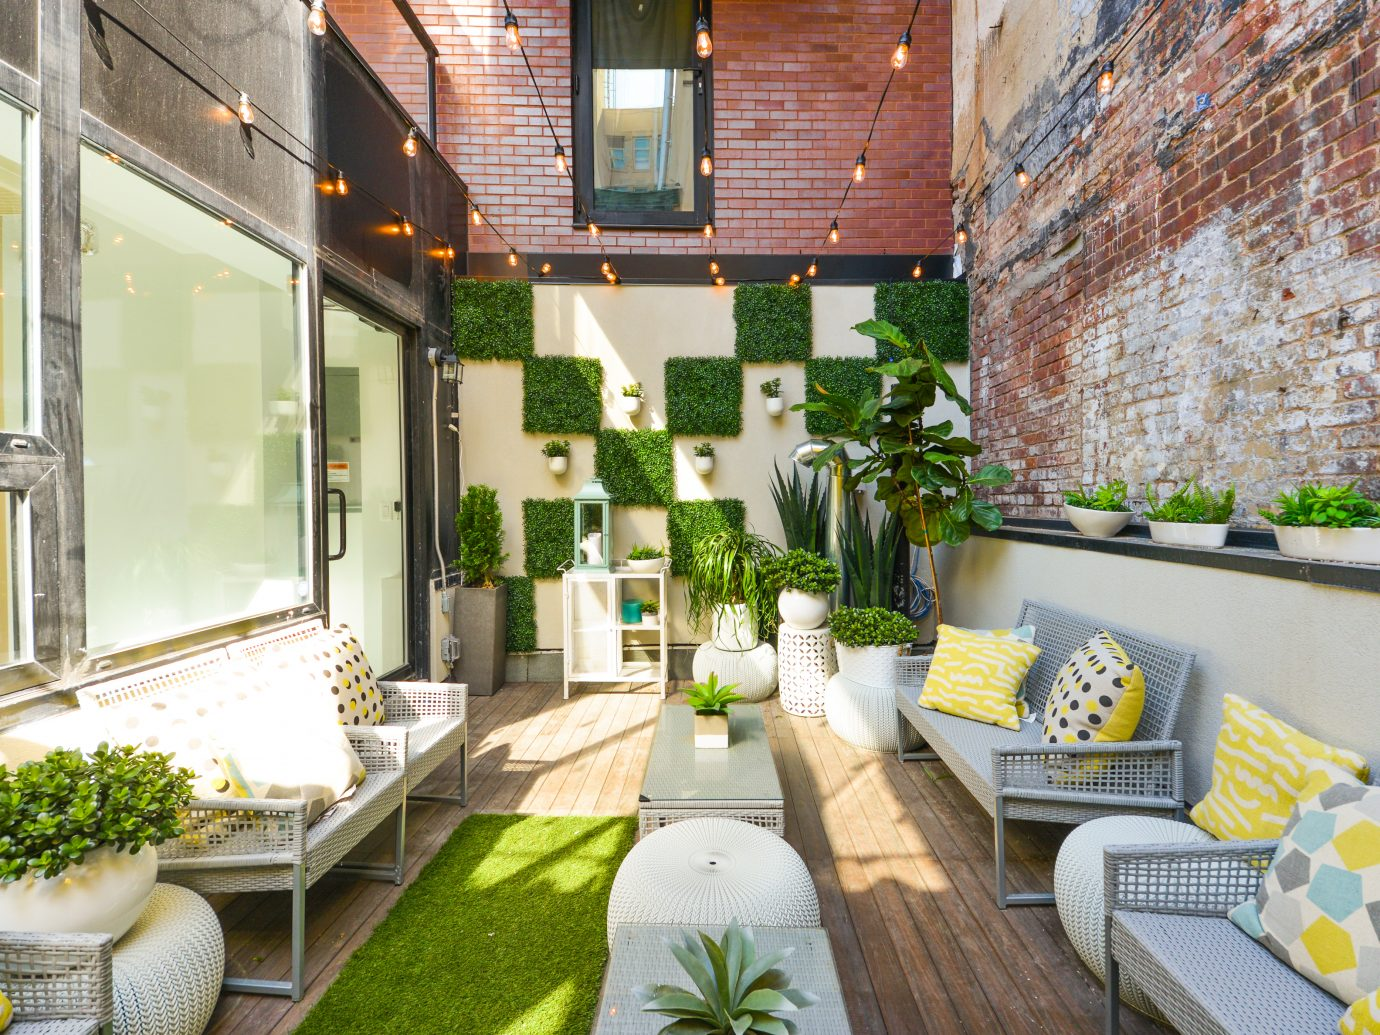 Outdoor area at Fox & Jane salon NYC